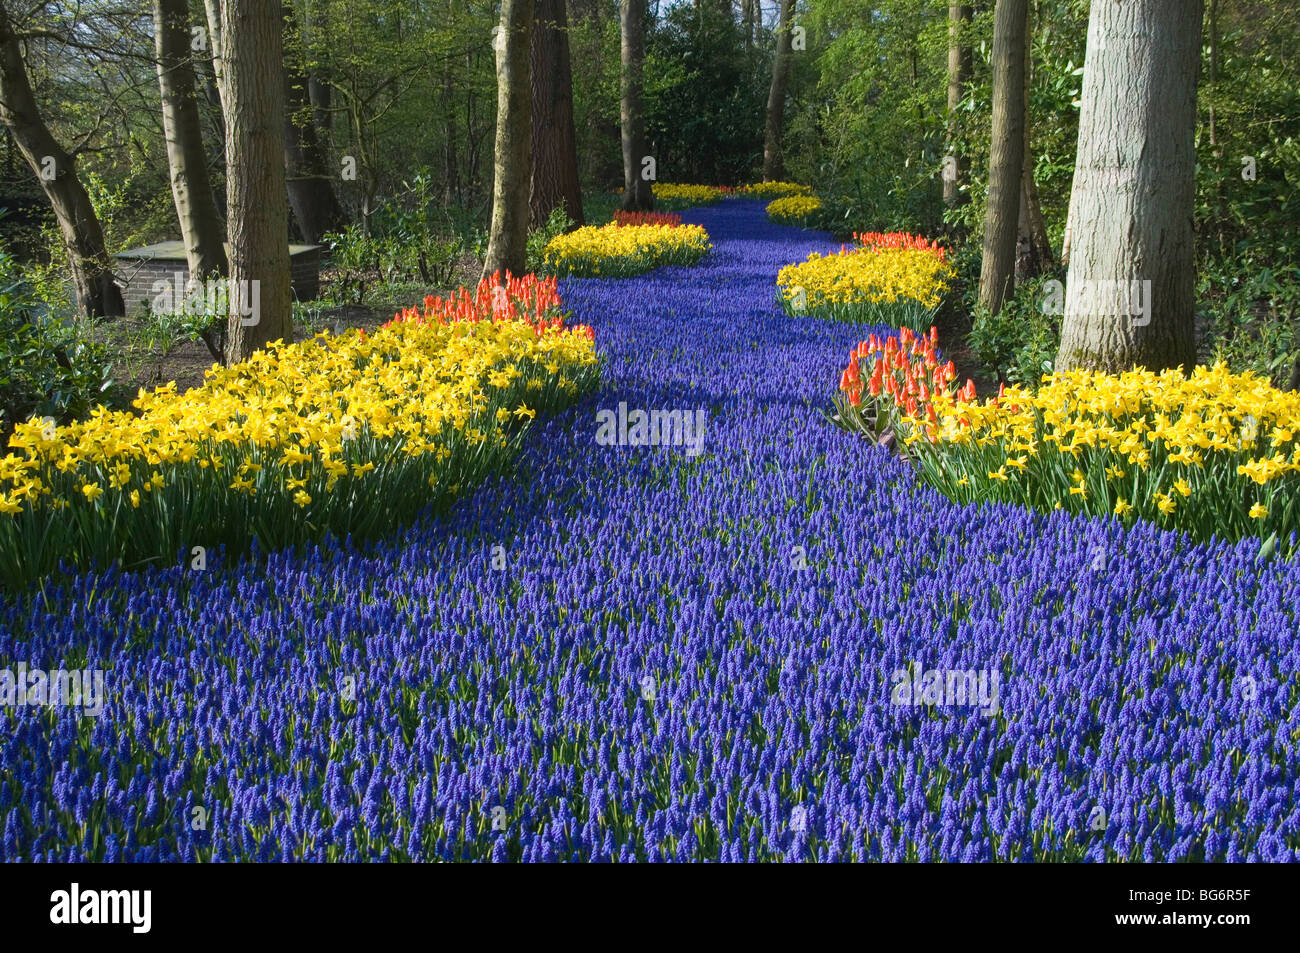 A RIVER OF MUSCARIA FLOWERS AND NARCISSUS, KEUKENHOF PARK GARDENS, LISSE, HOLLAND. - Stock Image